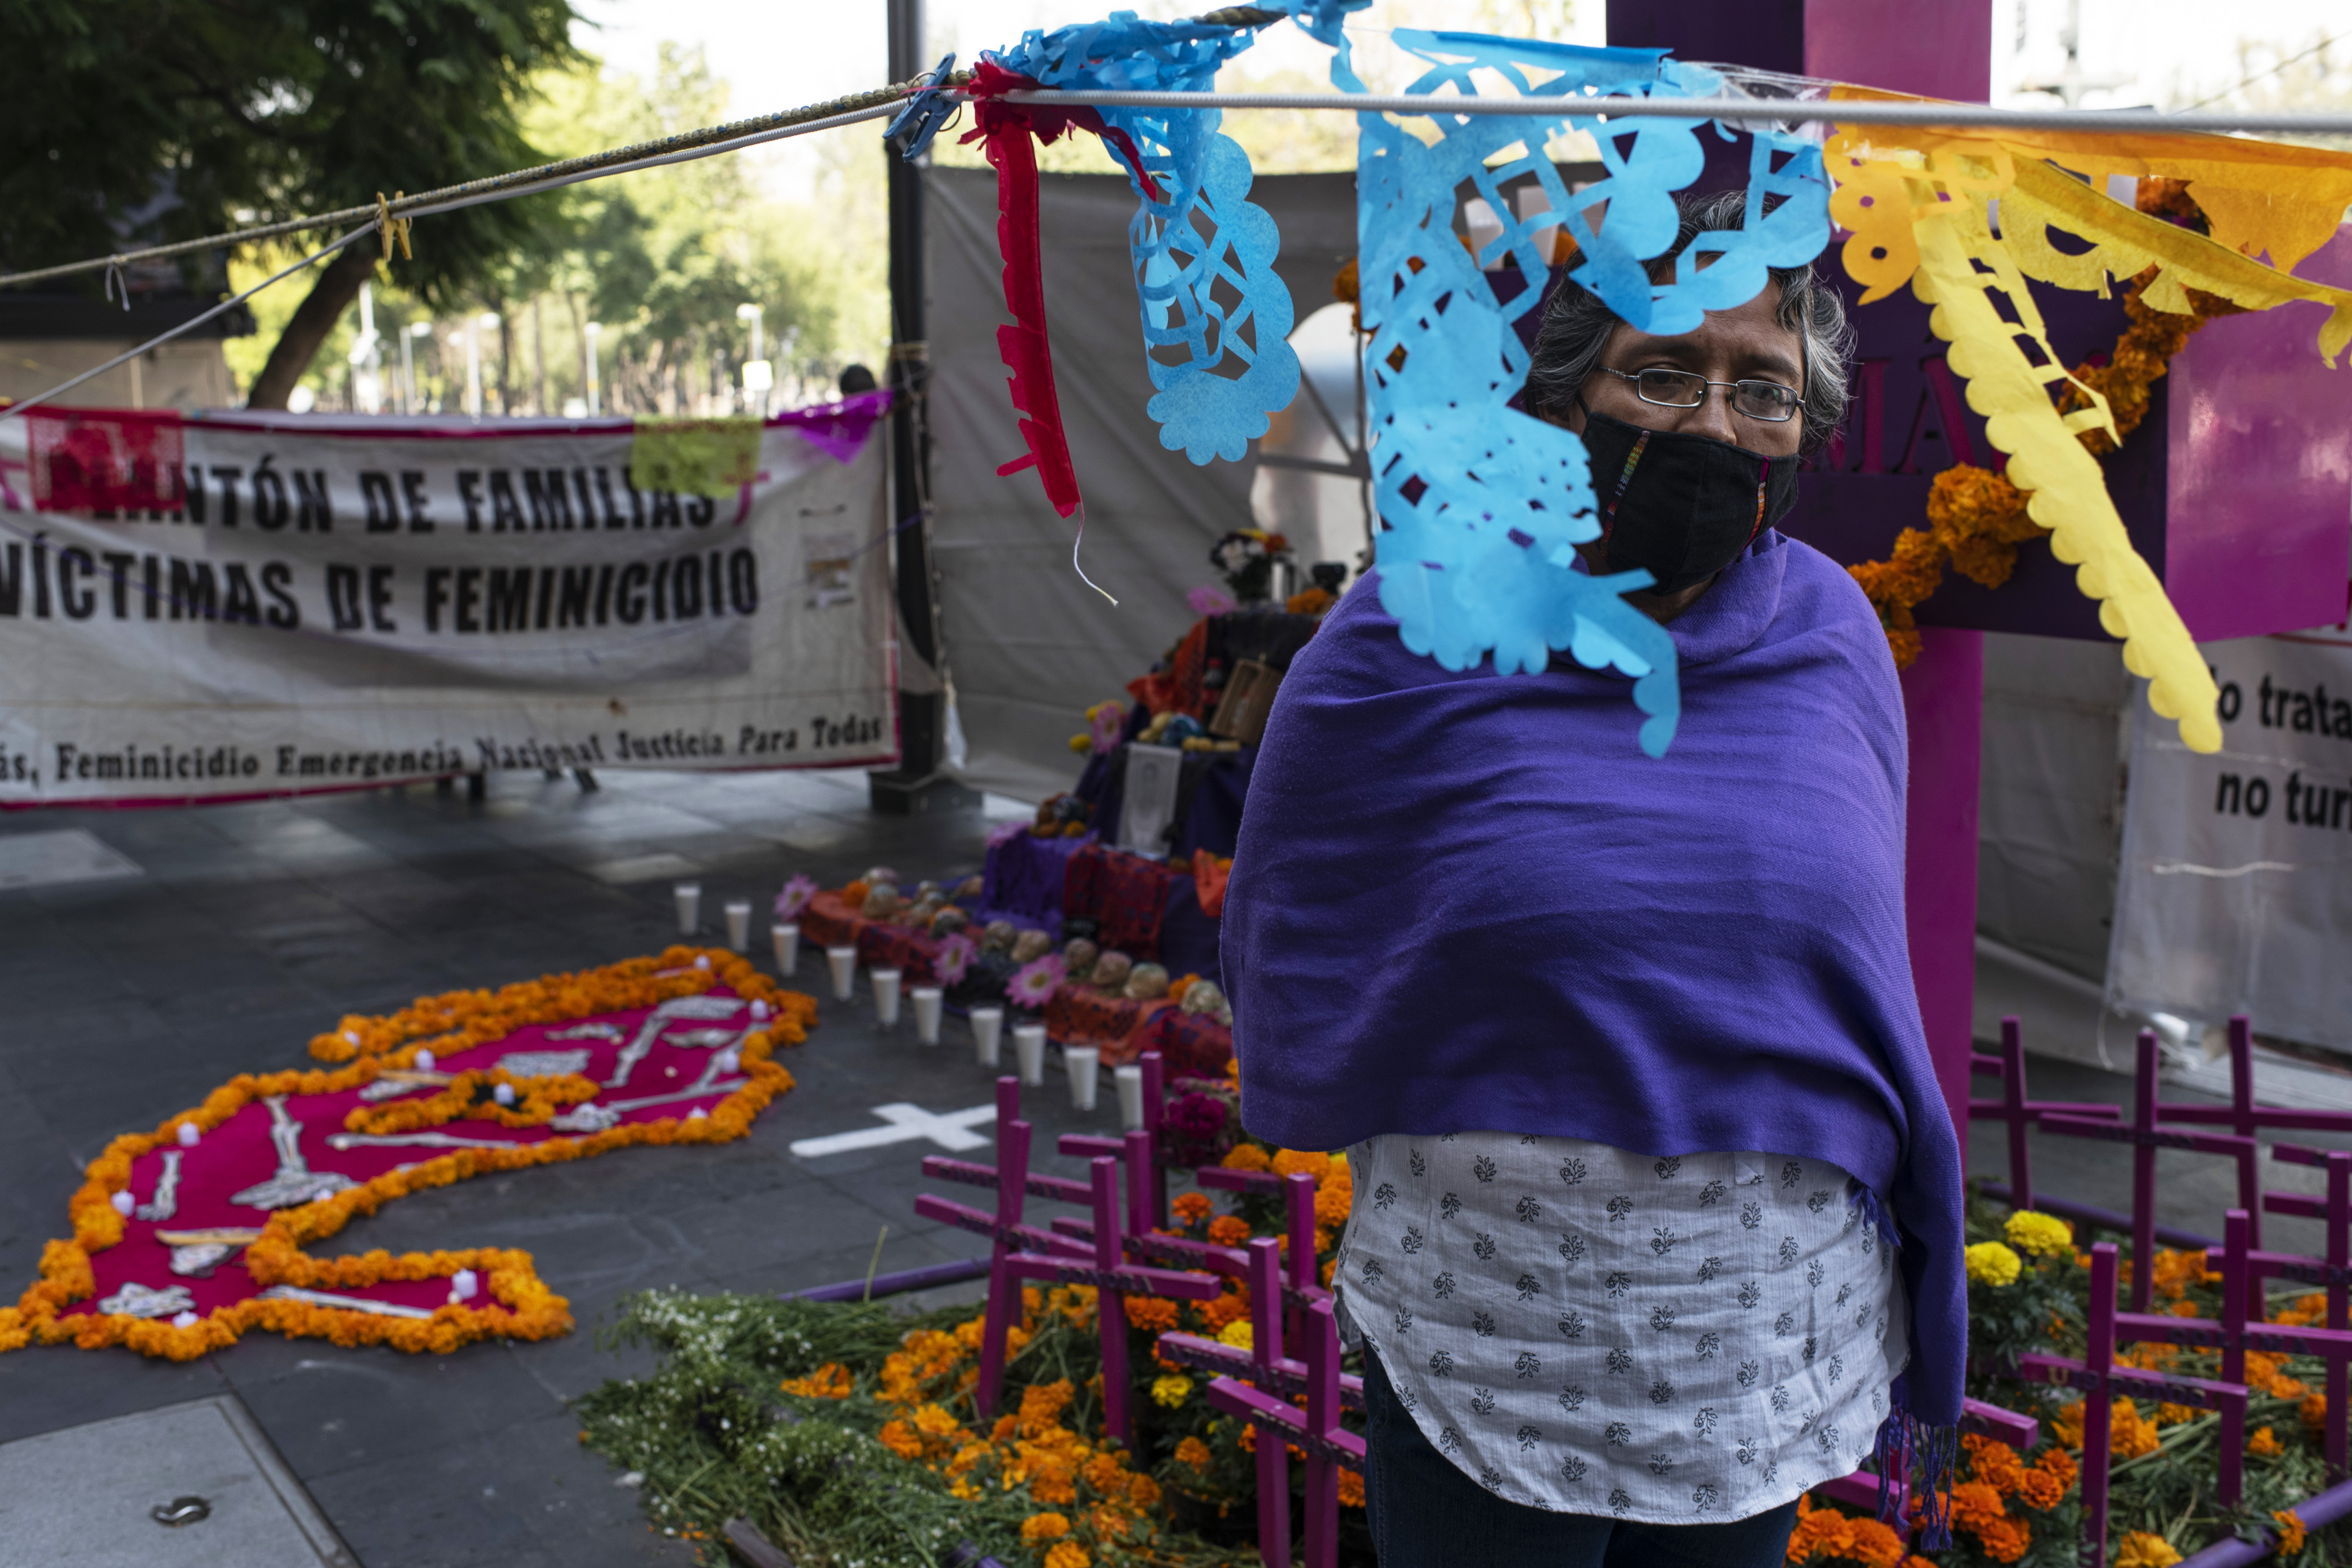 Alma Alvarado, from Jalapa, Veracruz, is in Mexico City supporting the feminist movement and the sit-in that takes place at the anti-femicide monument